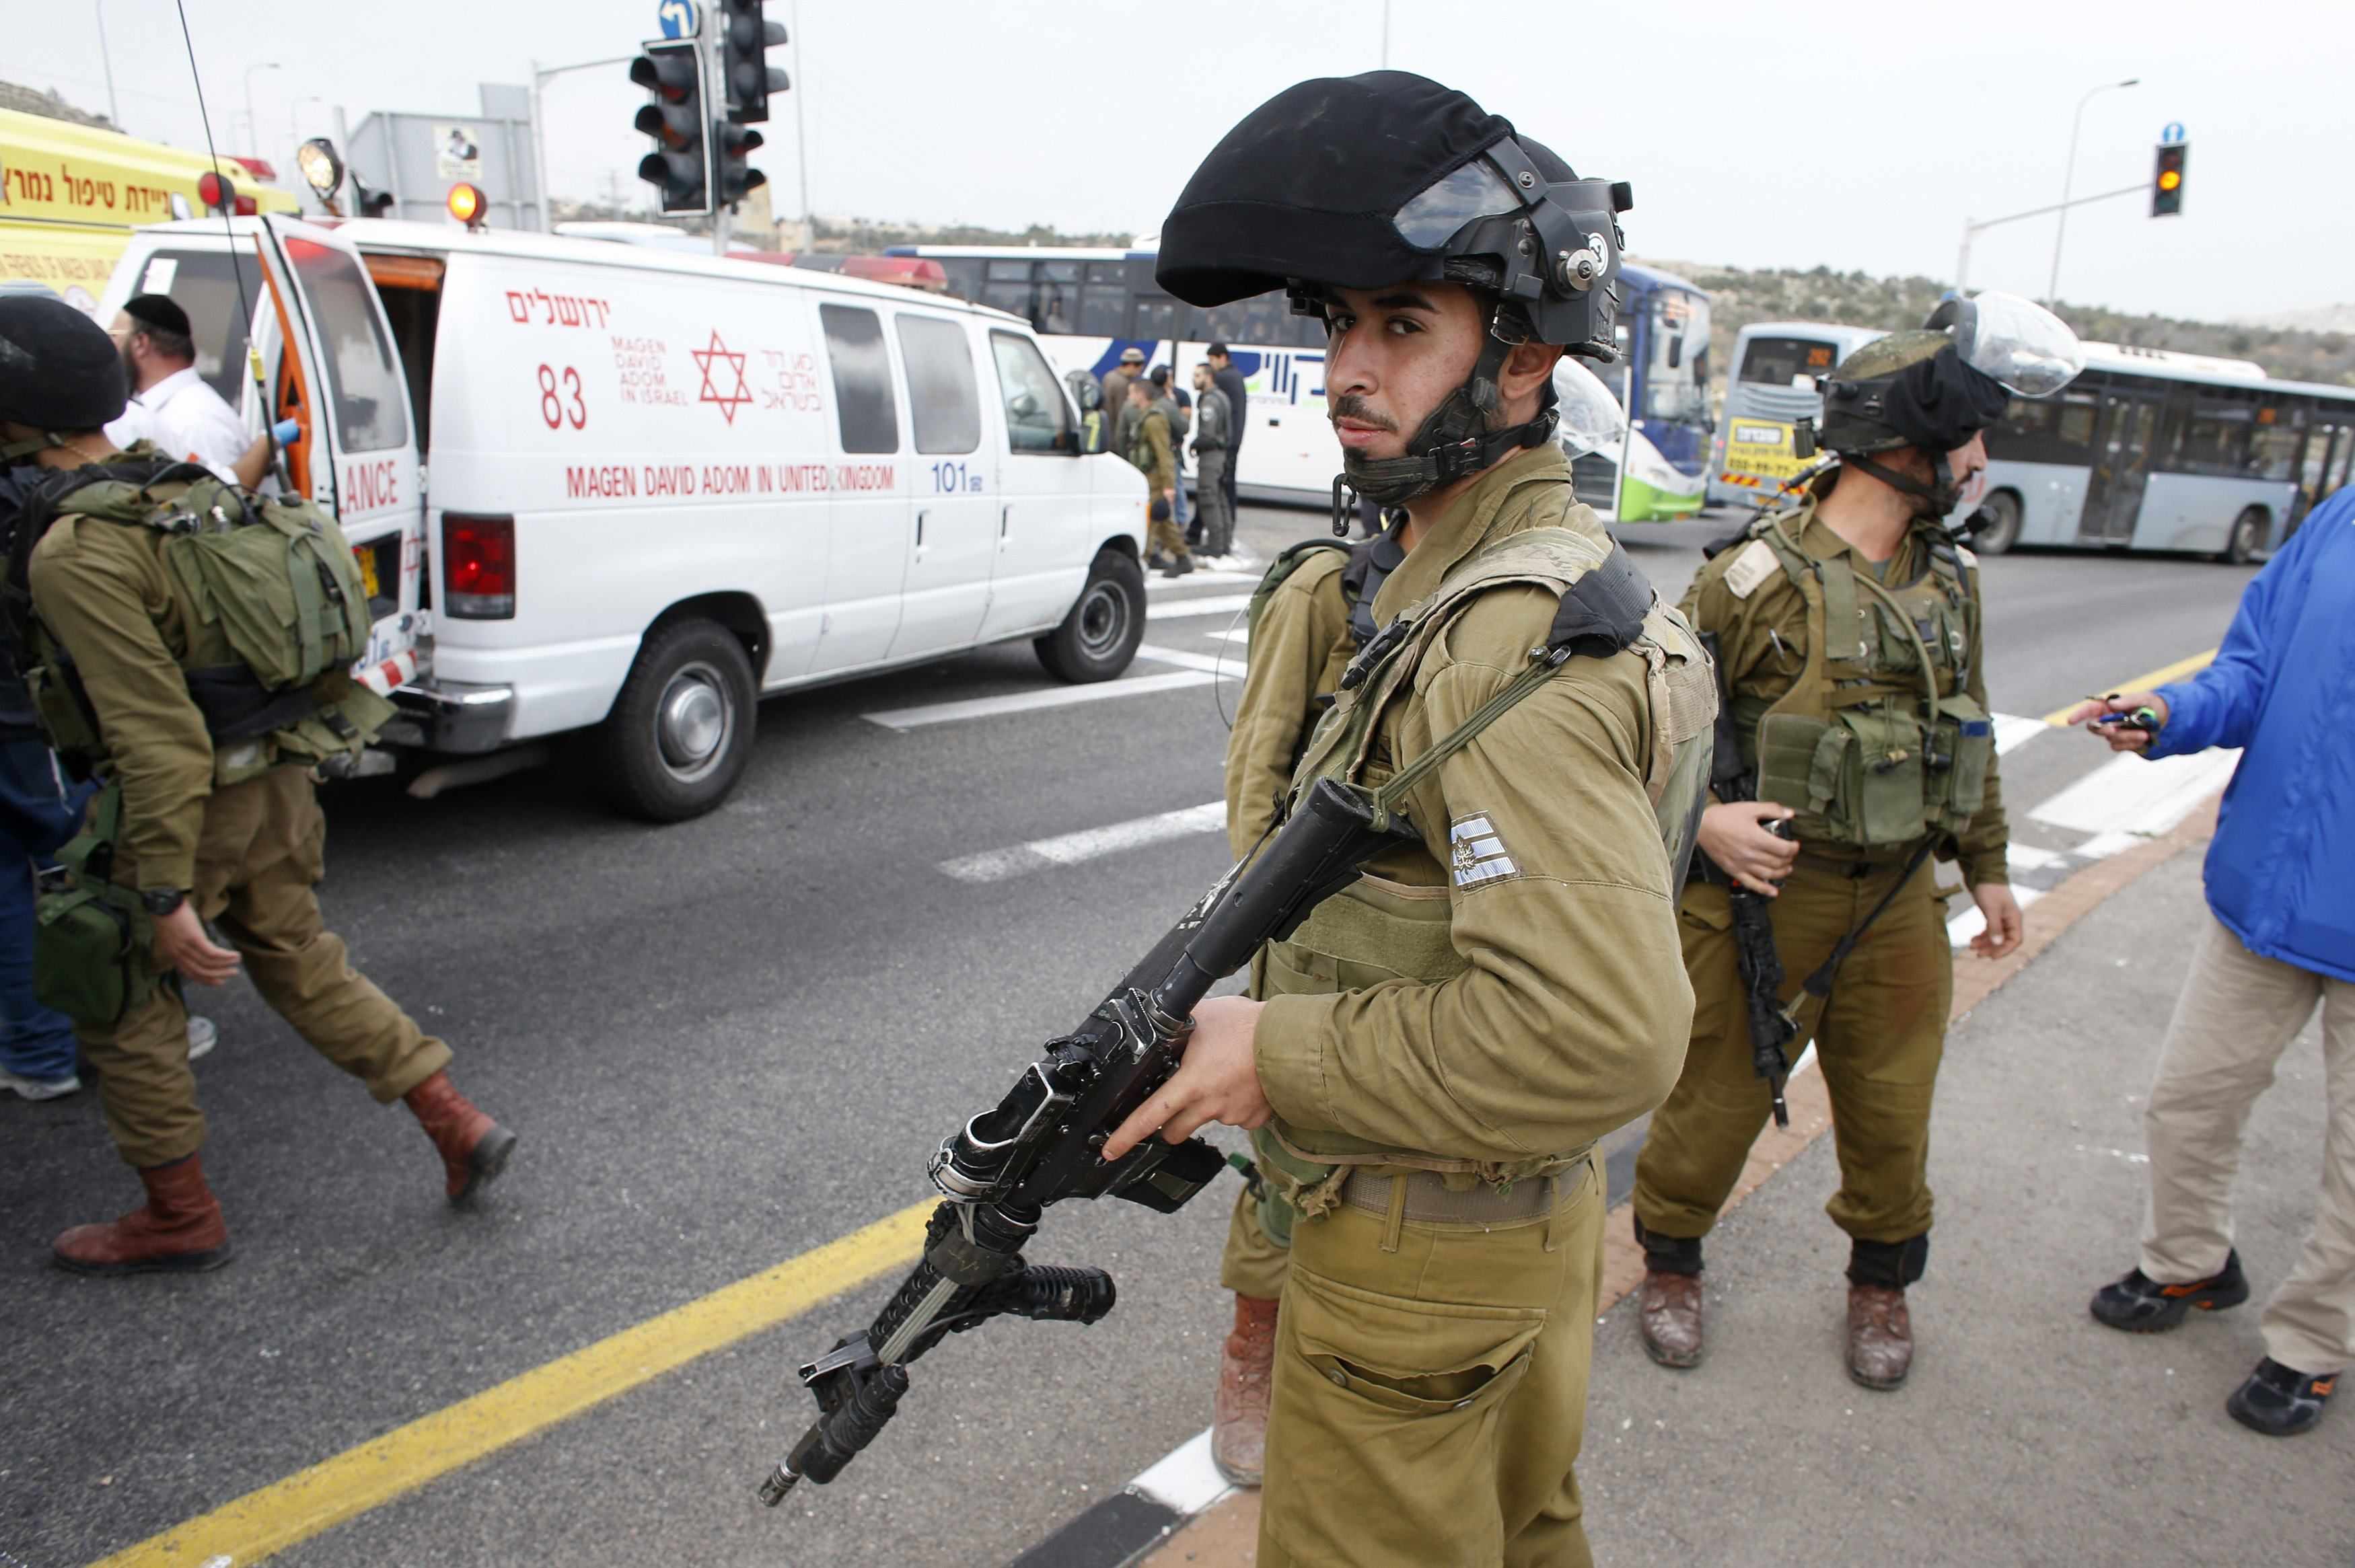 An Israeli soldier stand at the scene where a Palestinian attacked civilians with a chemical substance near the West Bank Jewish settlement of Neve Daniel